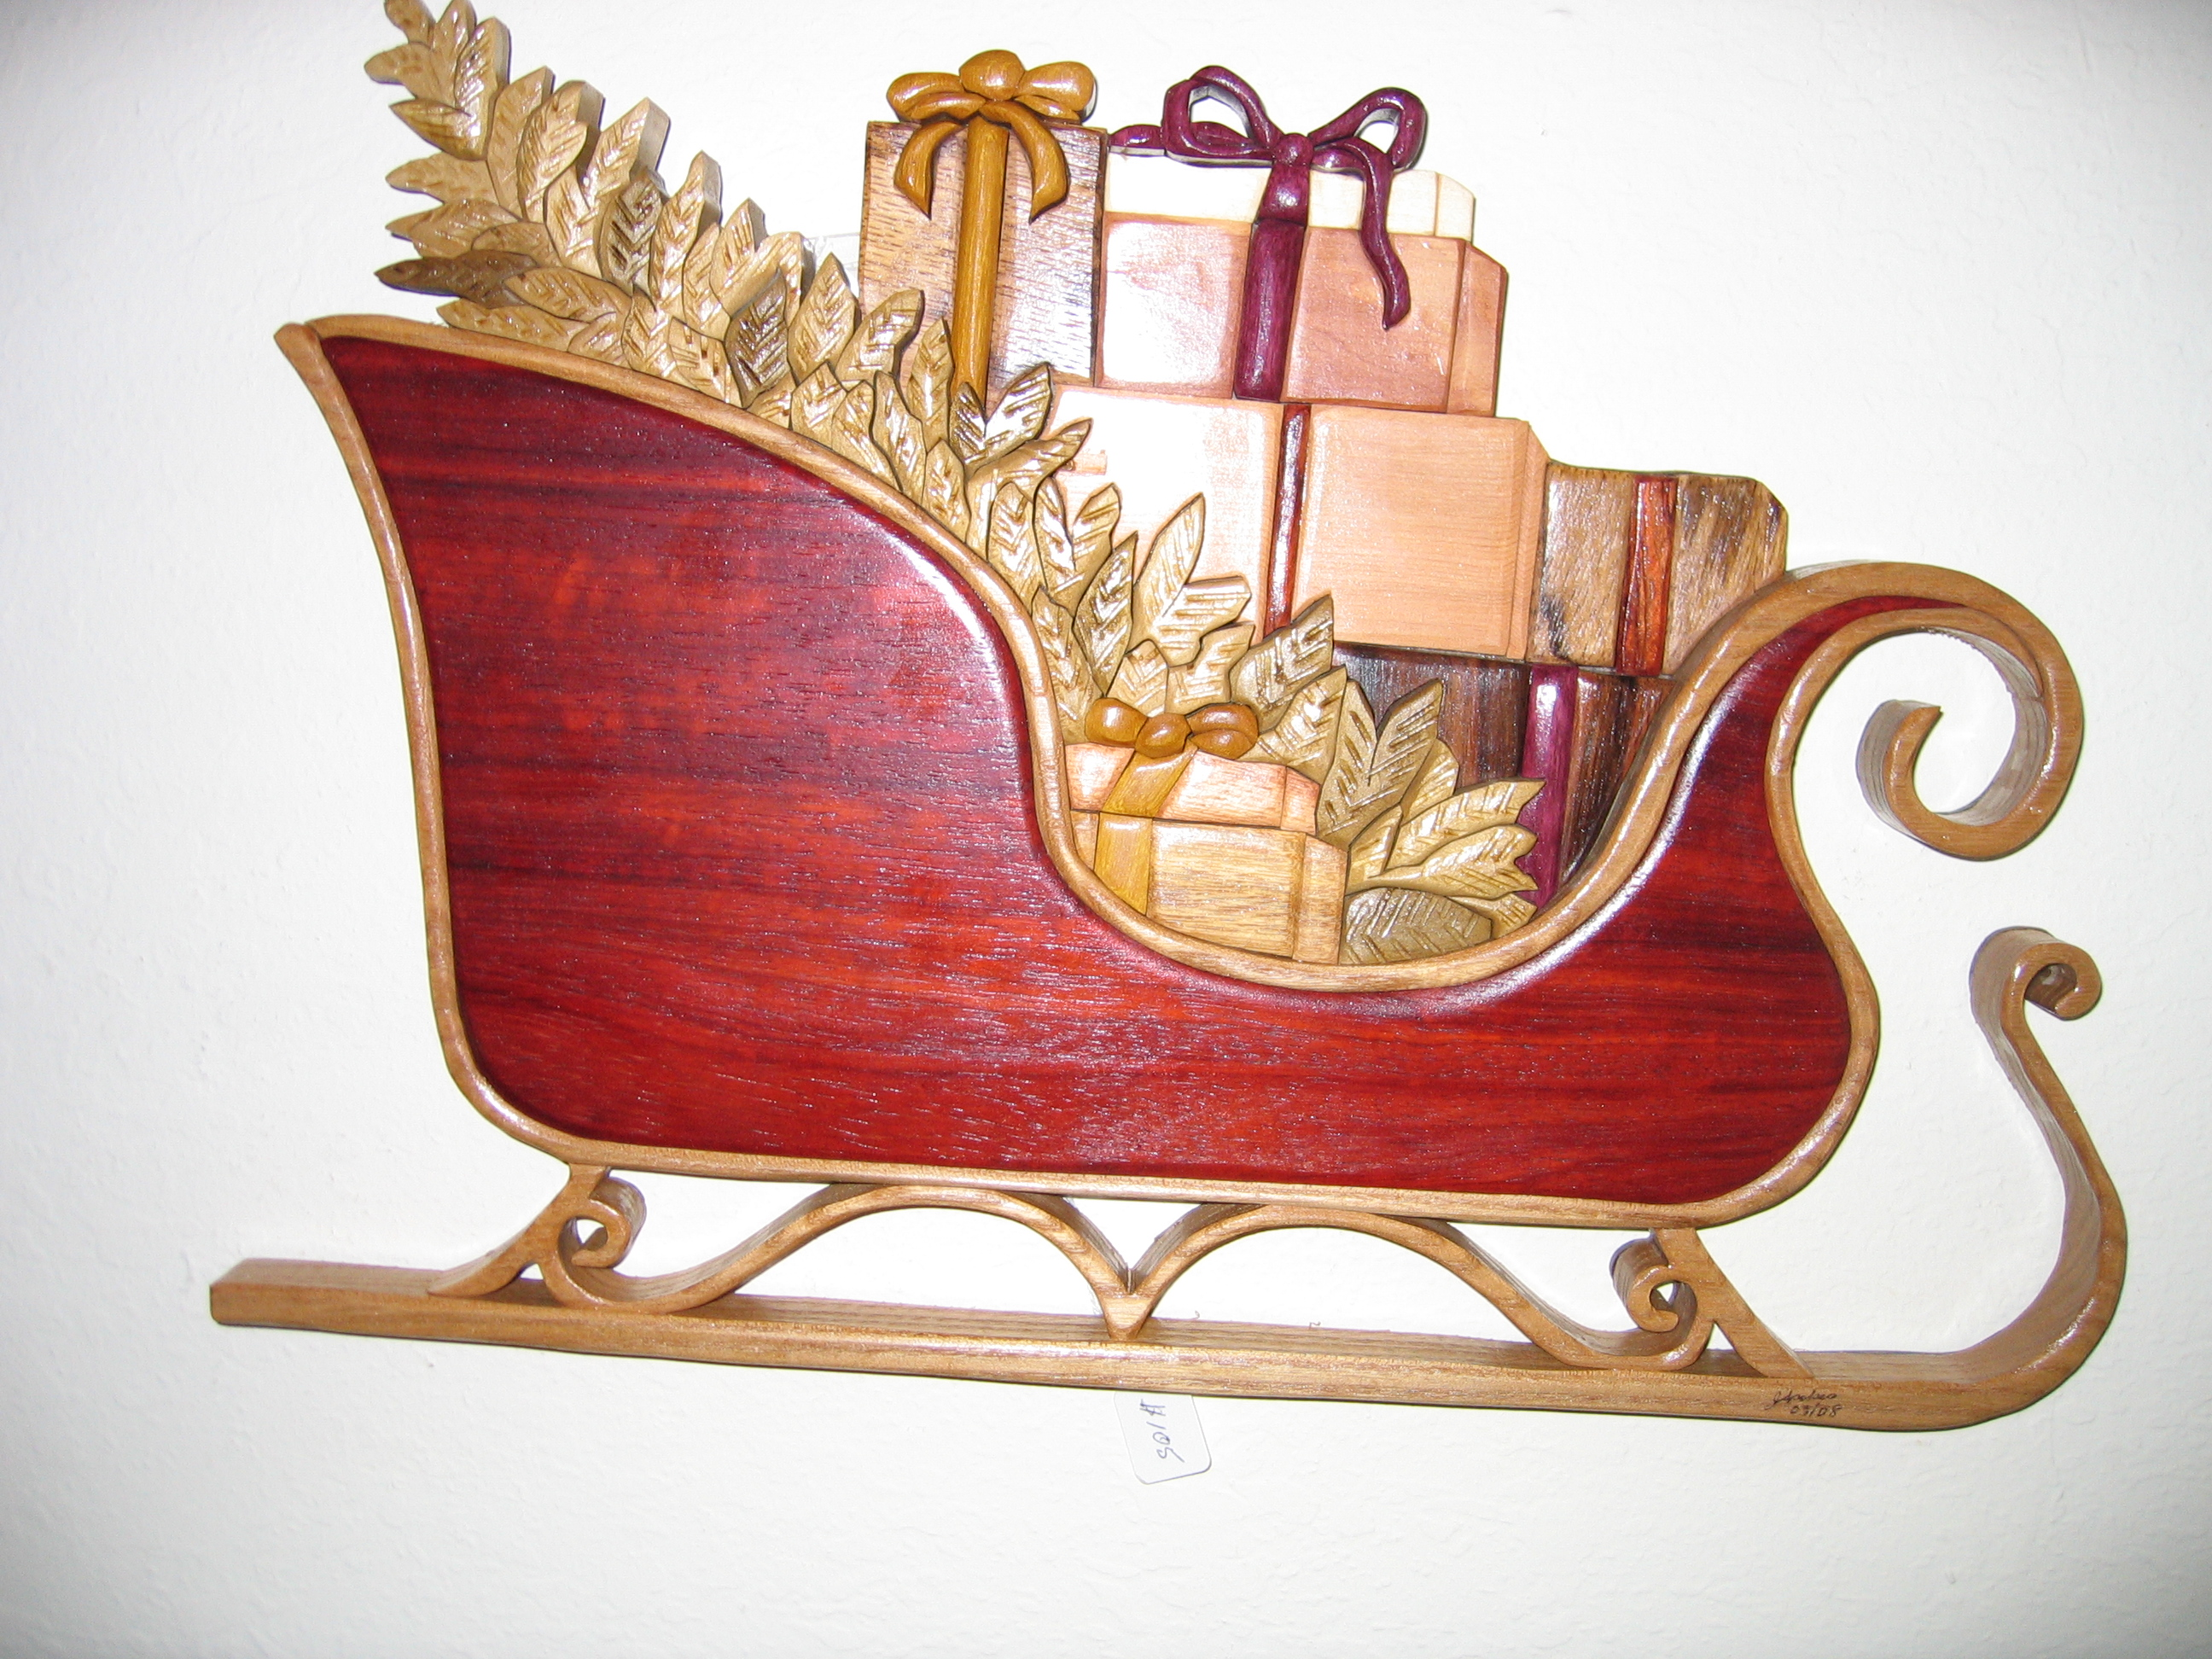 santa sleigh decoration - group picture, image by tag ...